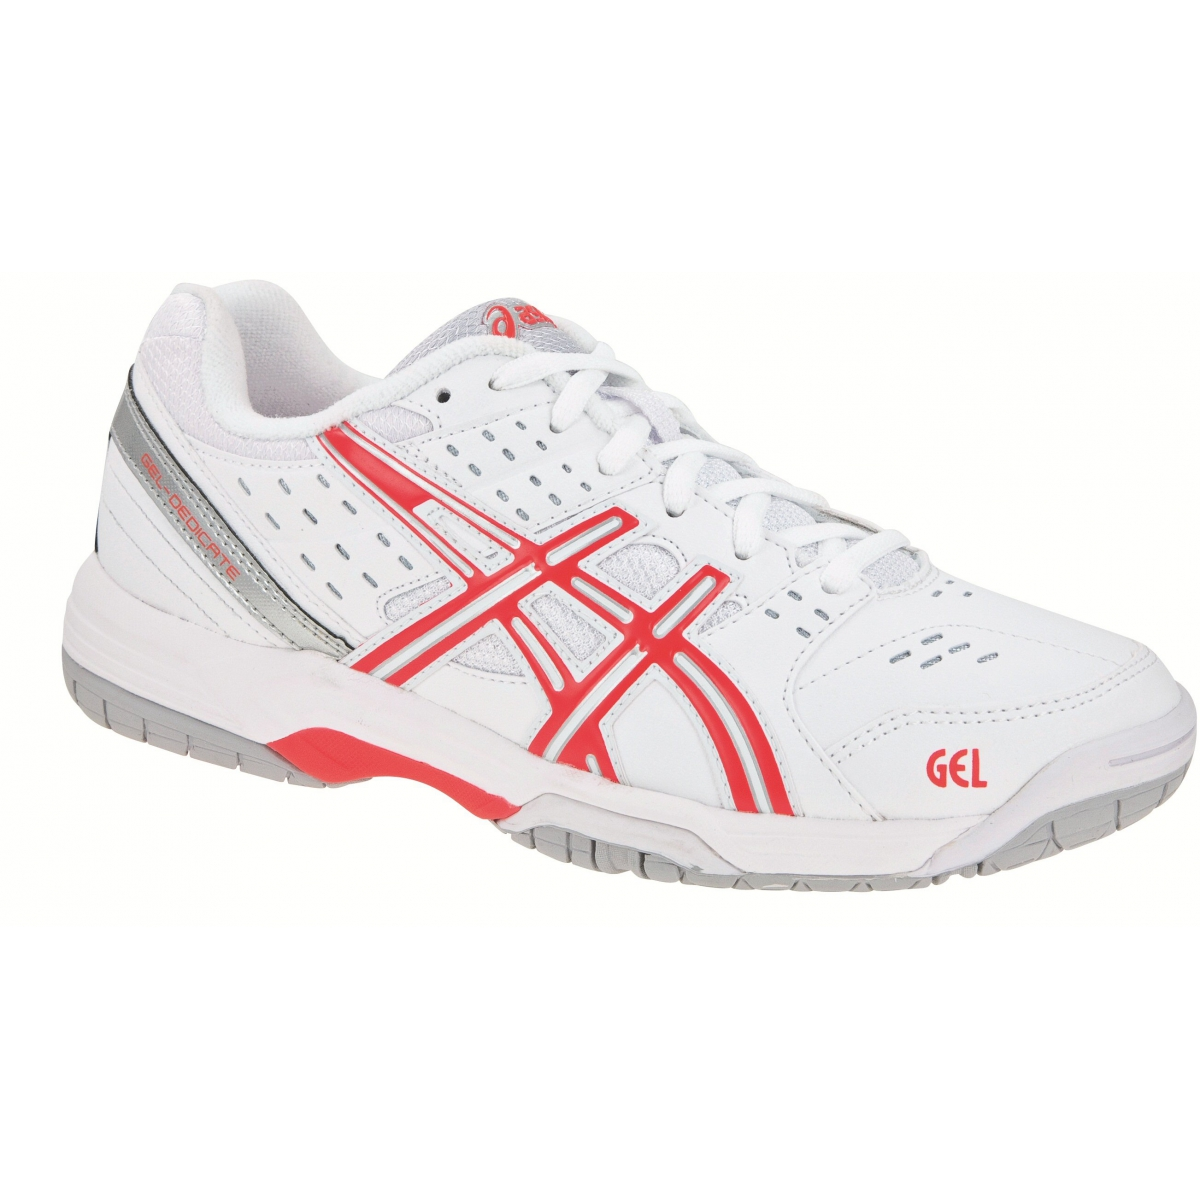 asics gel dedicate 3 weiss rot tennisschuhe damen gr e 44 5 online bestellen. Black Bedroom Furniture Sets. Home Design Ideas